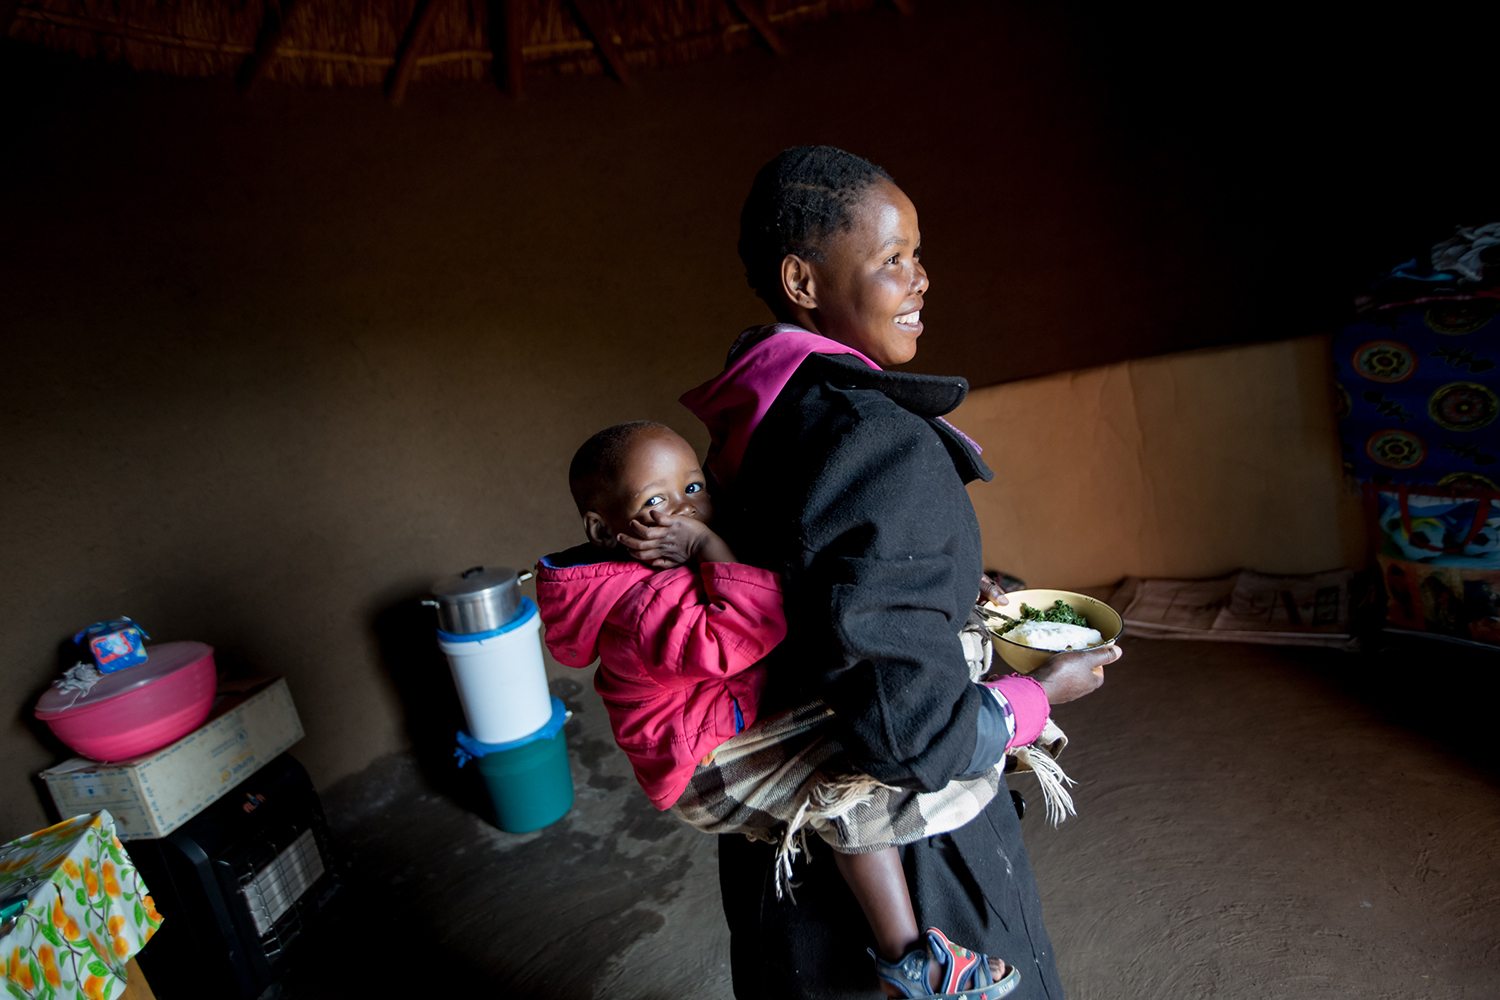 Makhatleho Moahlodi (26 yrs) and Katleho David Moahlodi (18 months) in their hut in the Ha Khapiso Village, Lesotho (UNICEF/Schermbrucker)